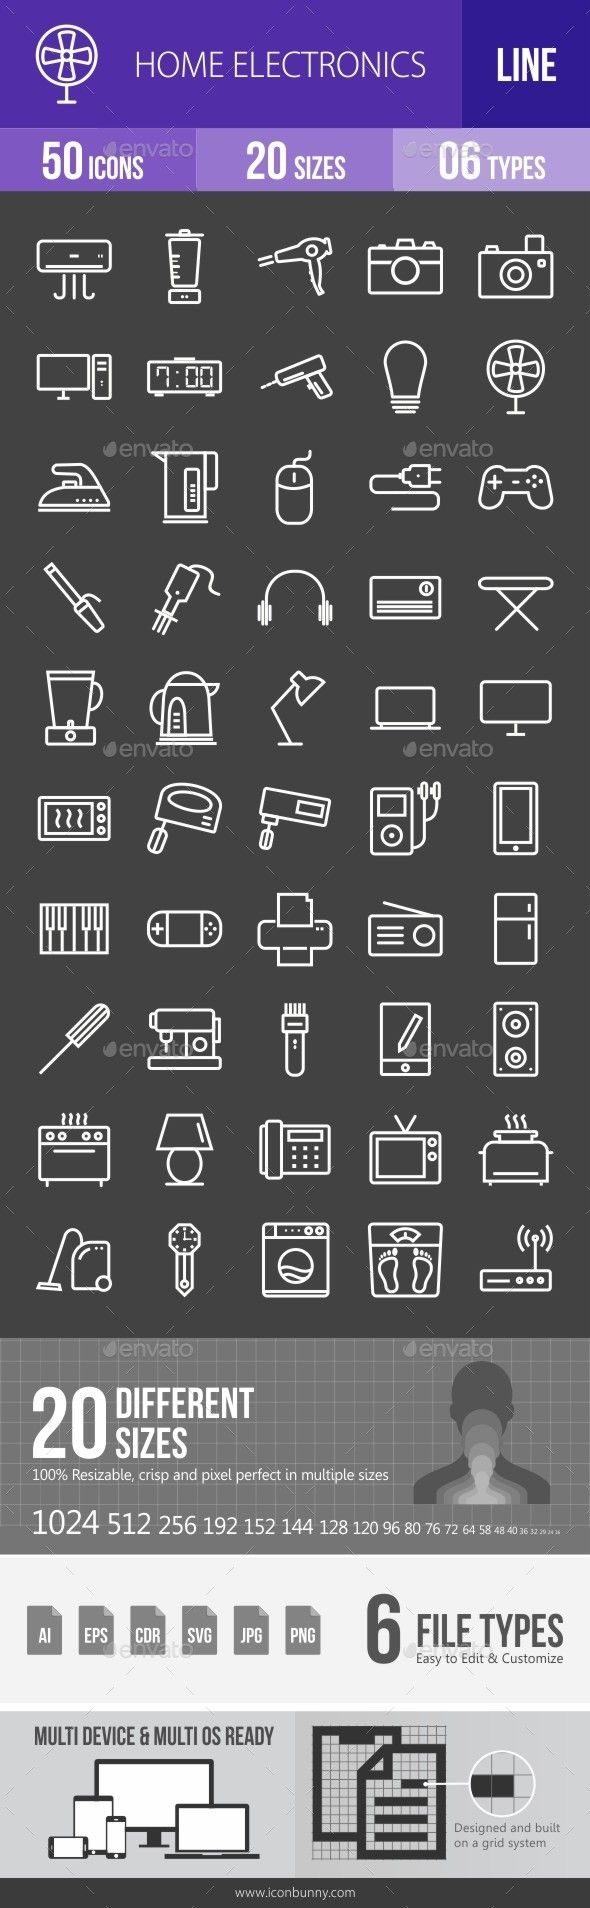 15 best odravanje materijala images on pinterest laundry home electronics line inverted icons biocorpaavc